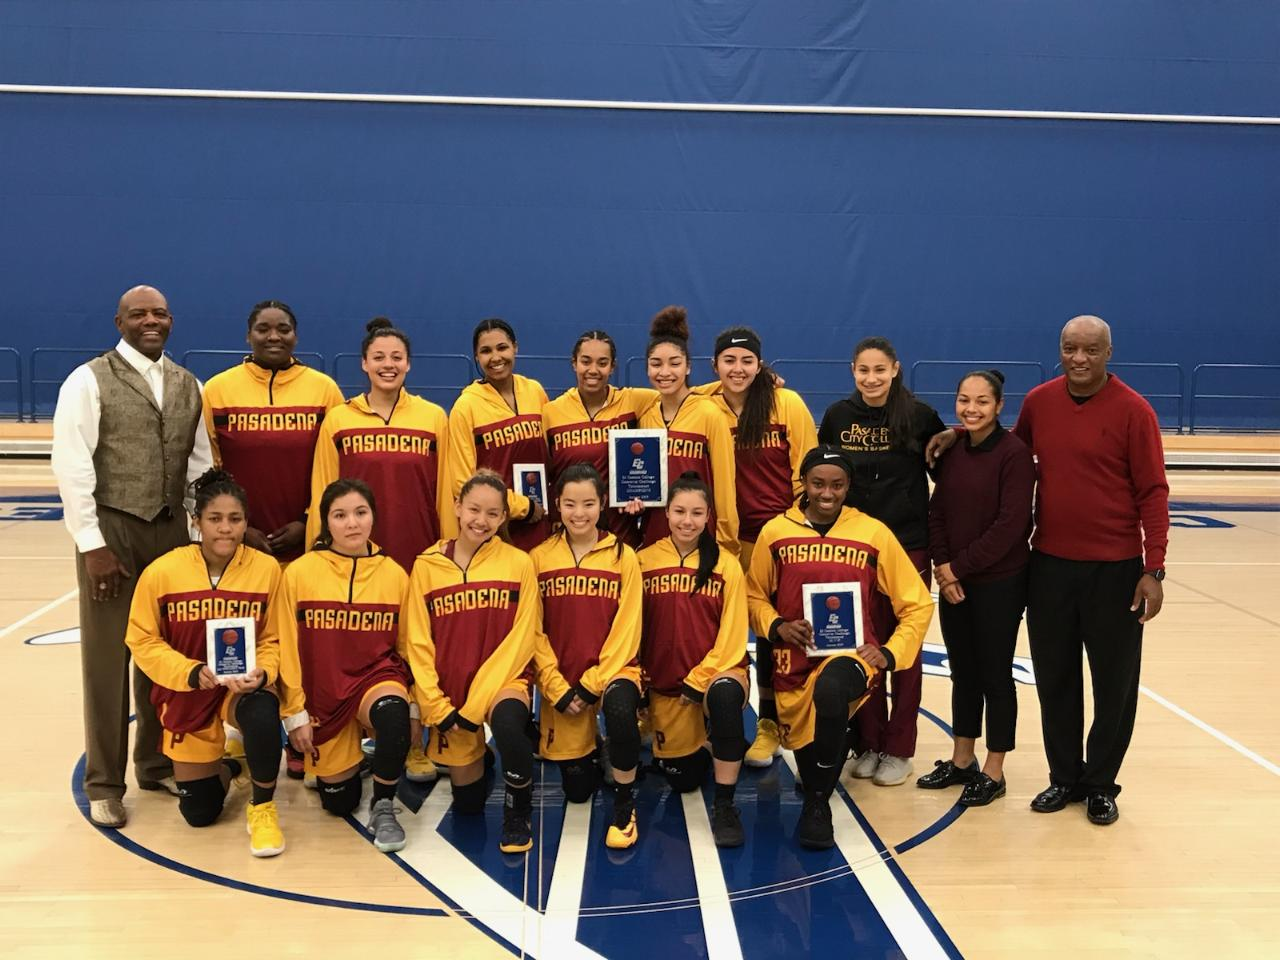 PCC takes a team photo following winning the Crossover Challenge Tournament title Friday night. MVP Dariel Johnson is in the bottom row far right holding her award.